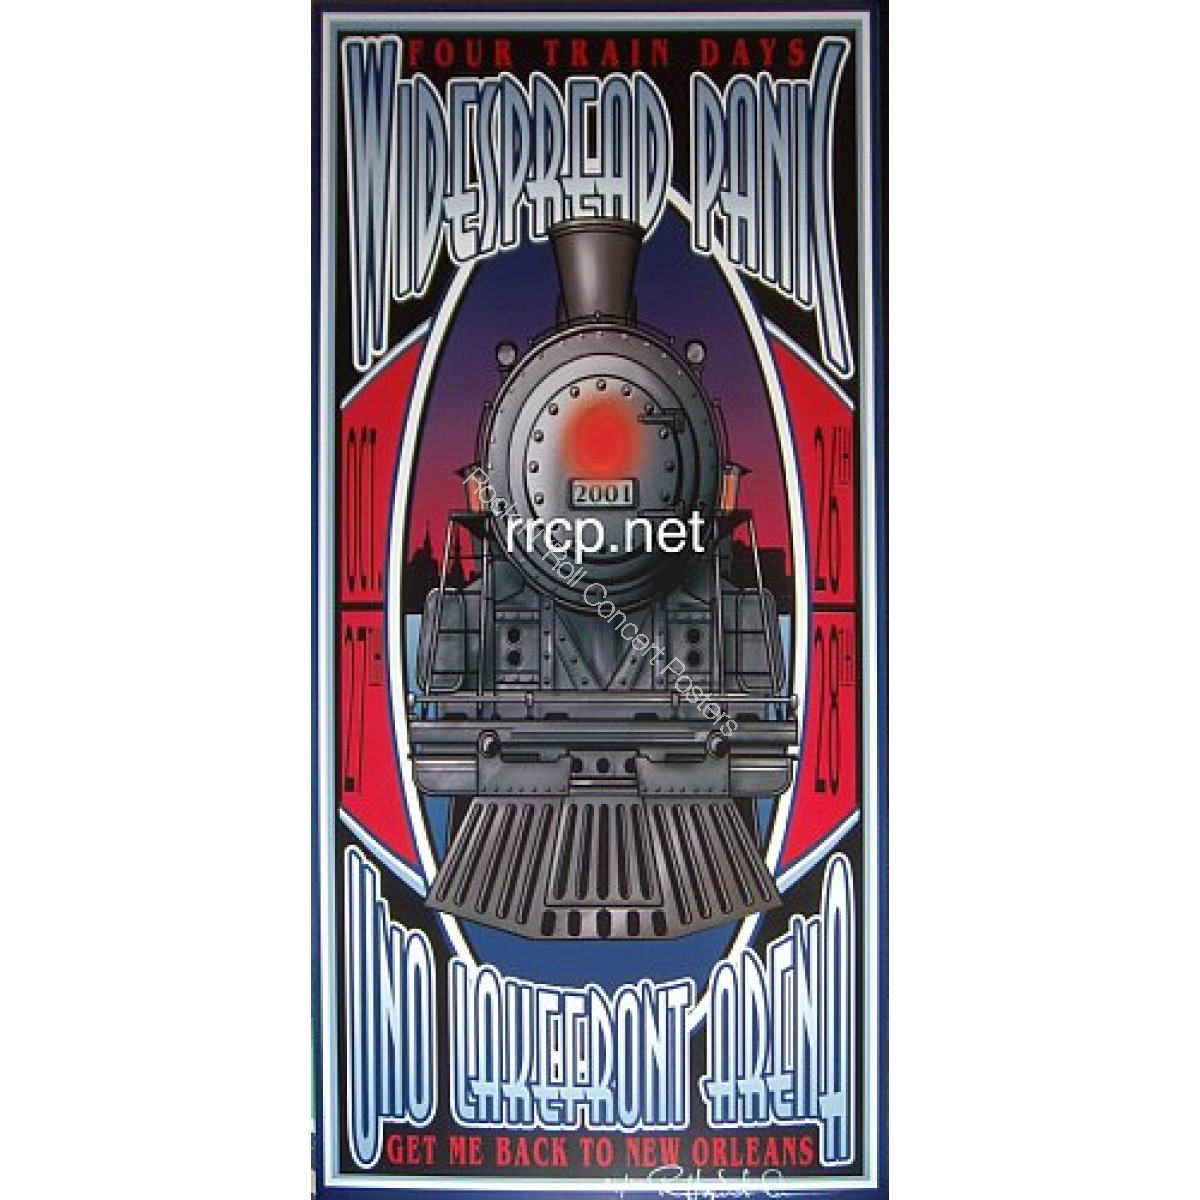 Widespread Panic UNO Lakefront Arena New Orleans 10/27-29/01